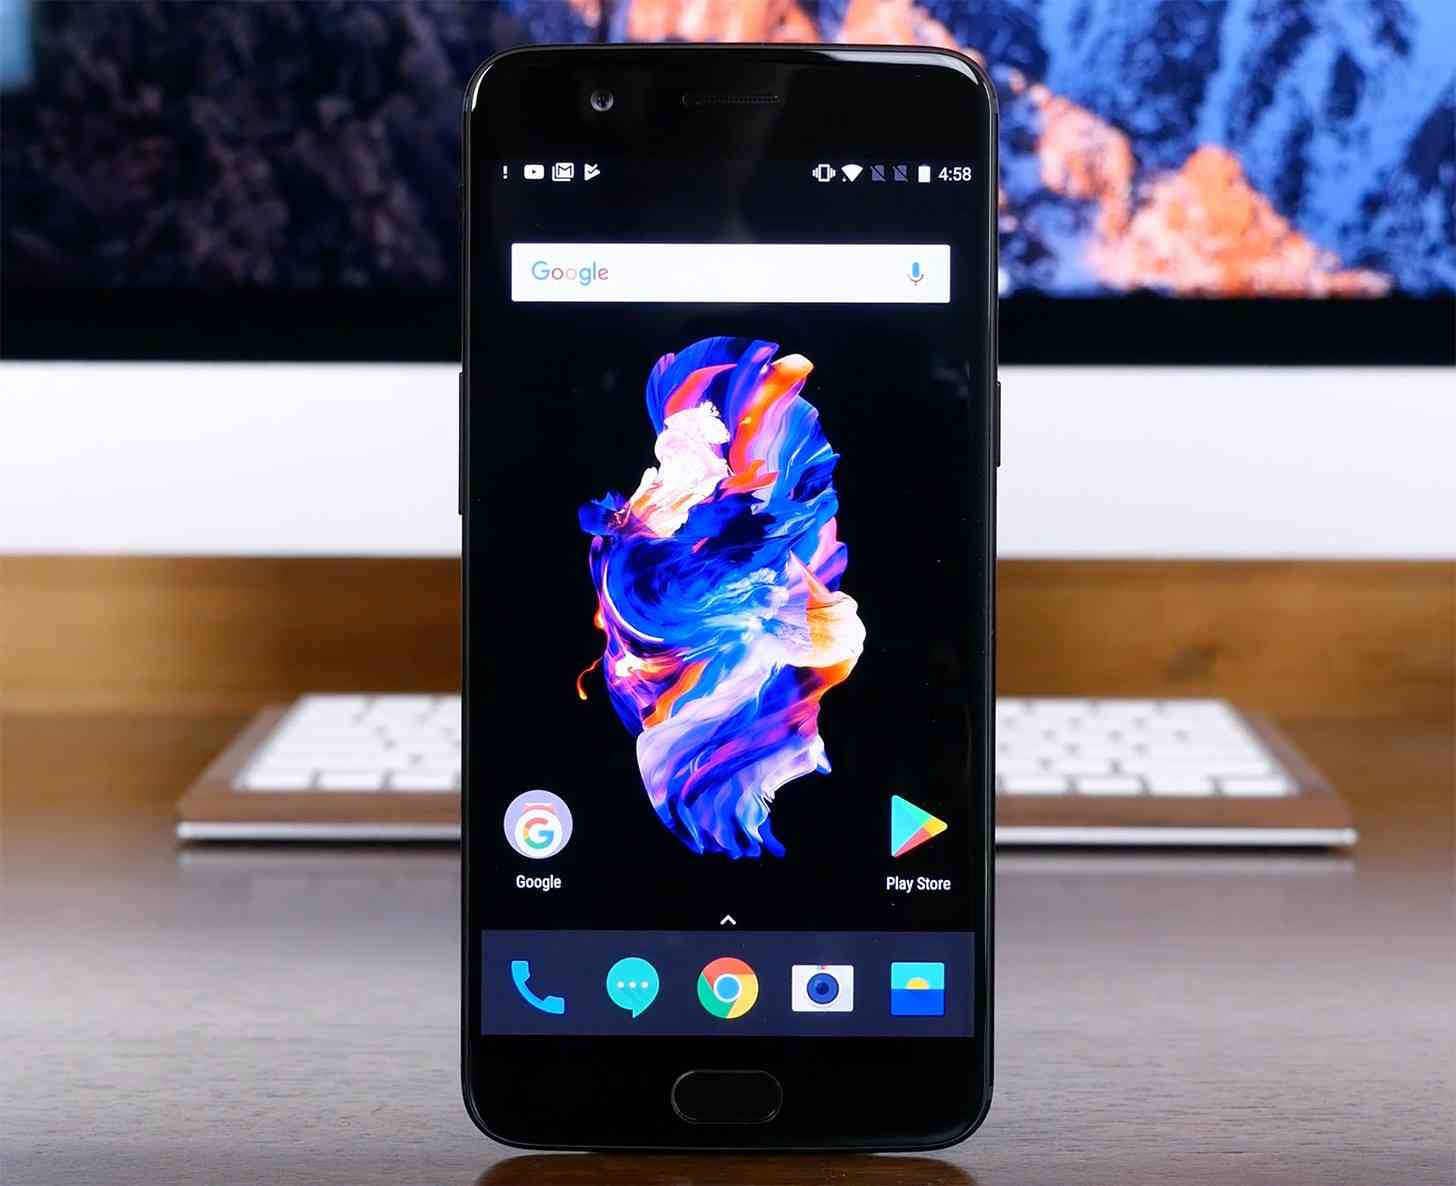 OnePlus 5 hands-on video